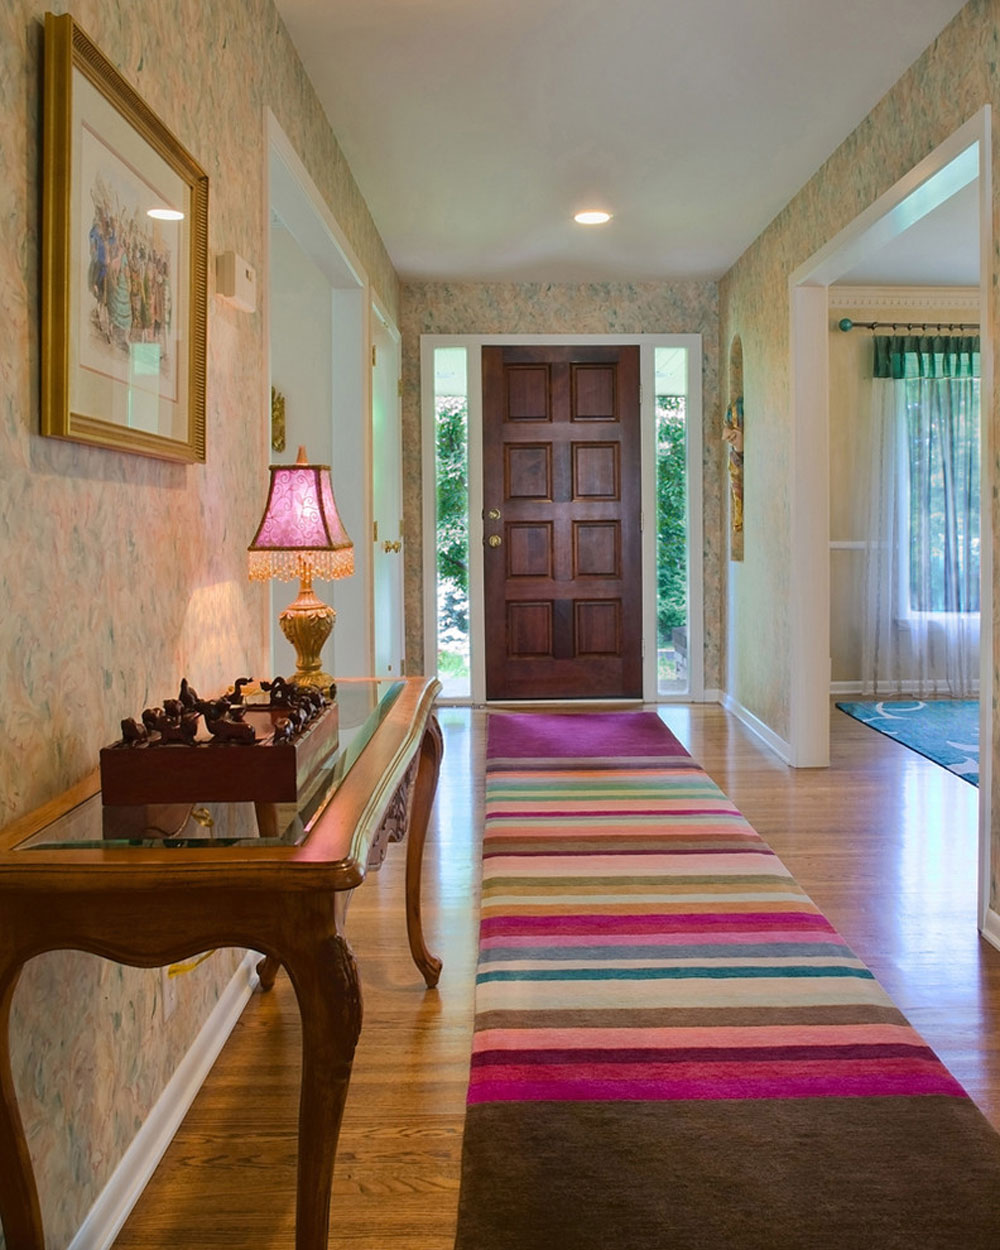 Creating the interior design for the entrance hall. 6 Creating the interior design for the entrance hall